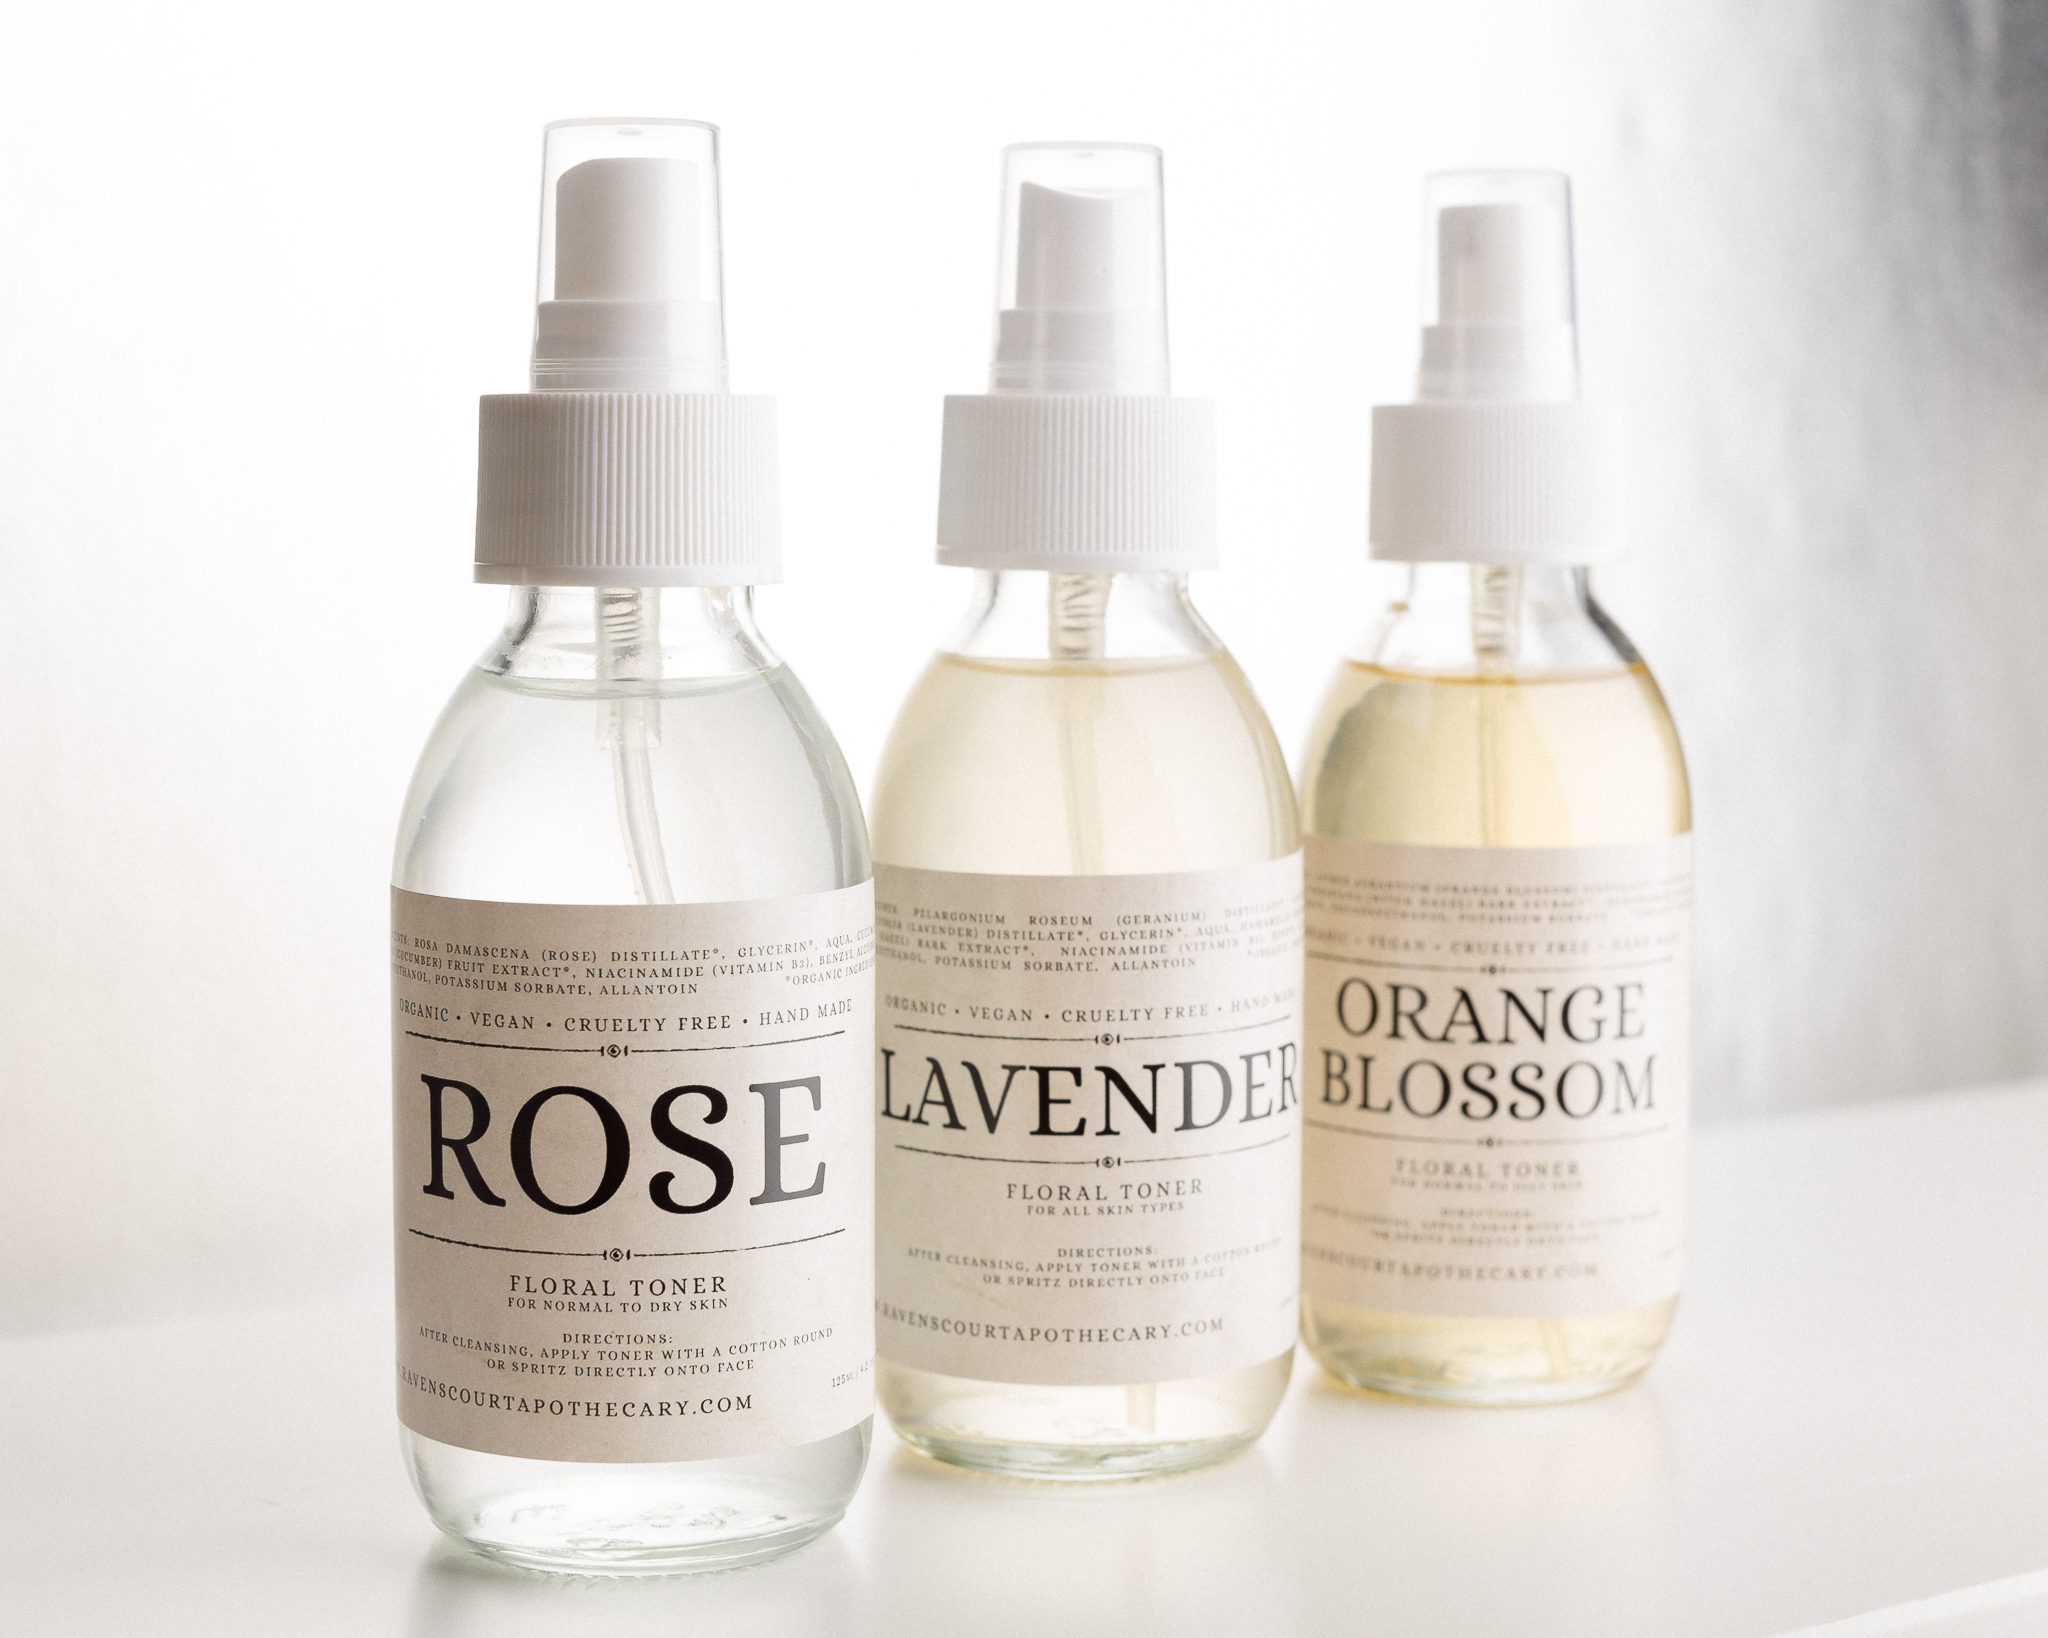 Organic Floral Toners: Rose, Lavender and Orange Blossom